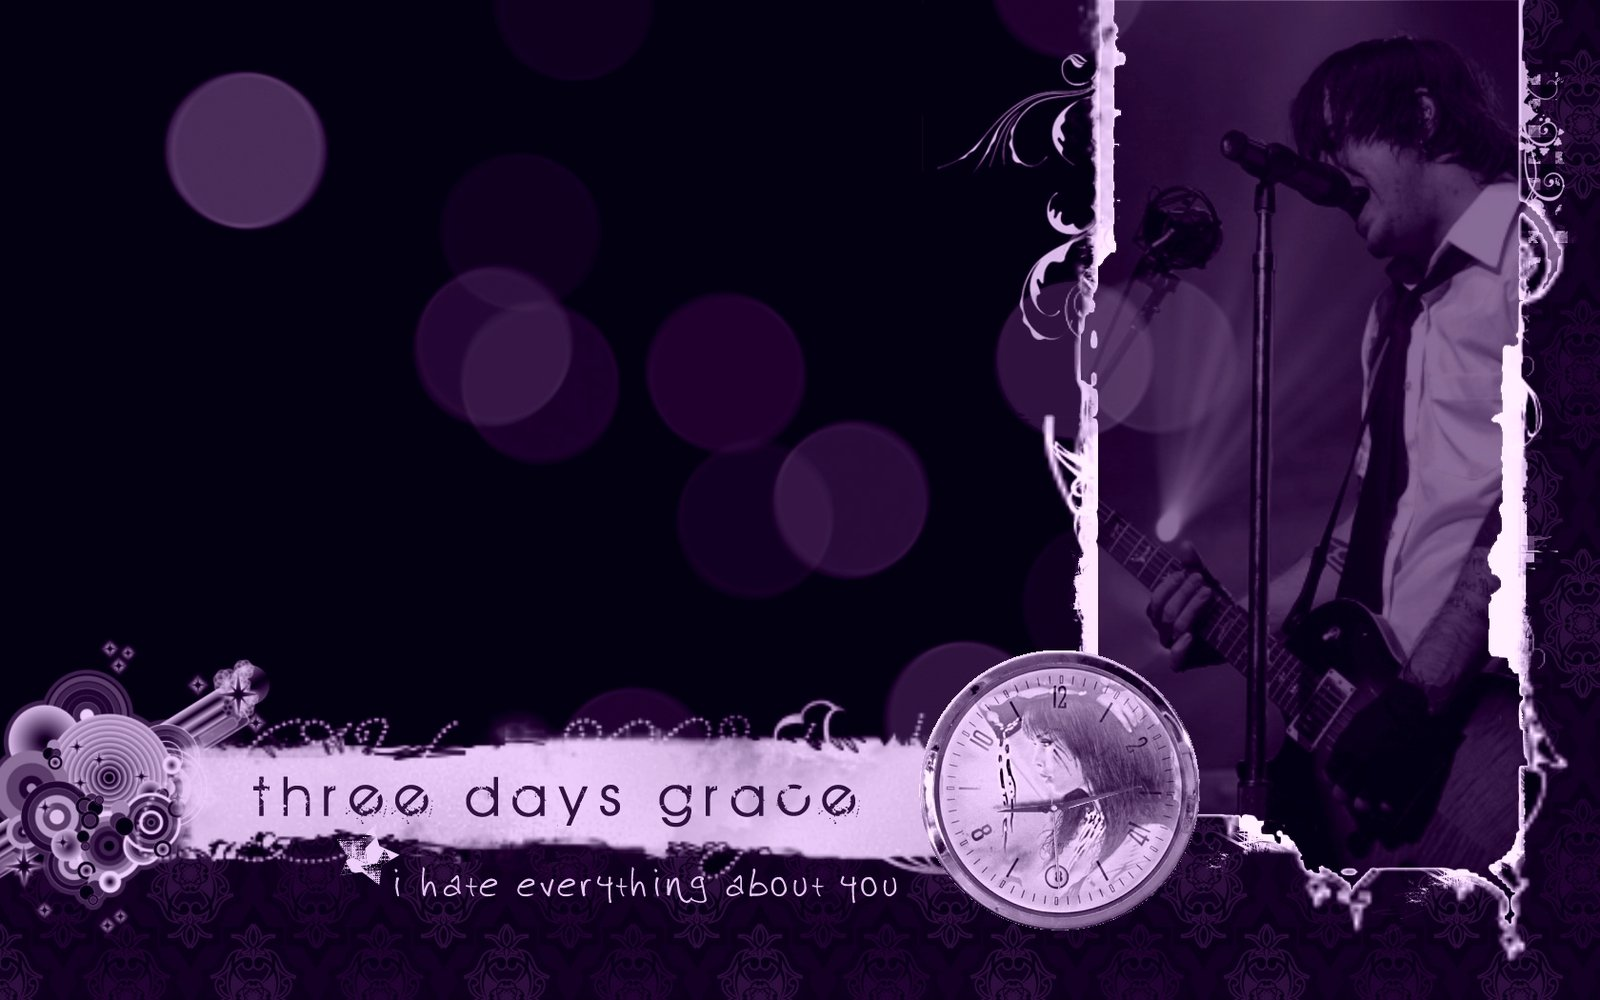 three days grace wallpaper 7 by flatlace fan art wallpaper other 2011 1600x1000